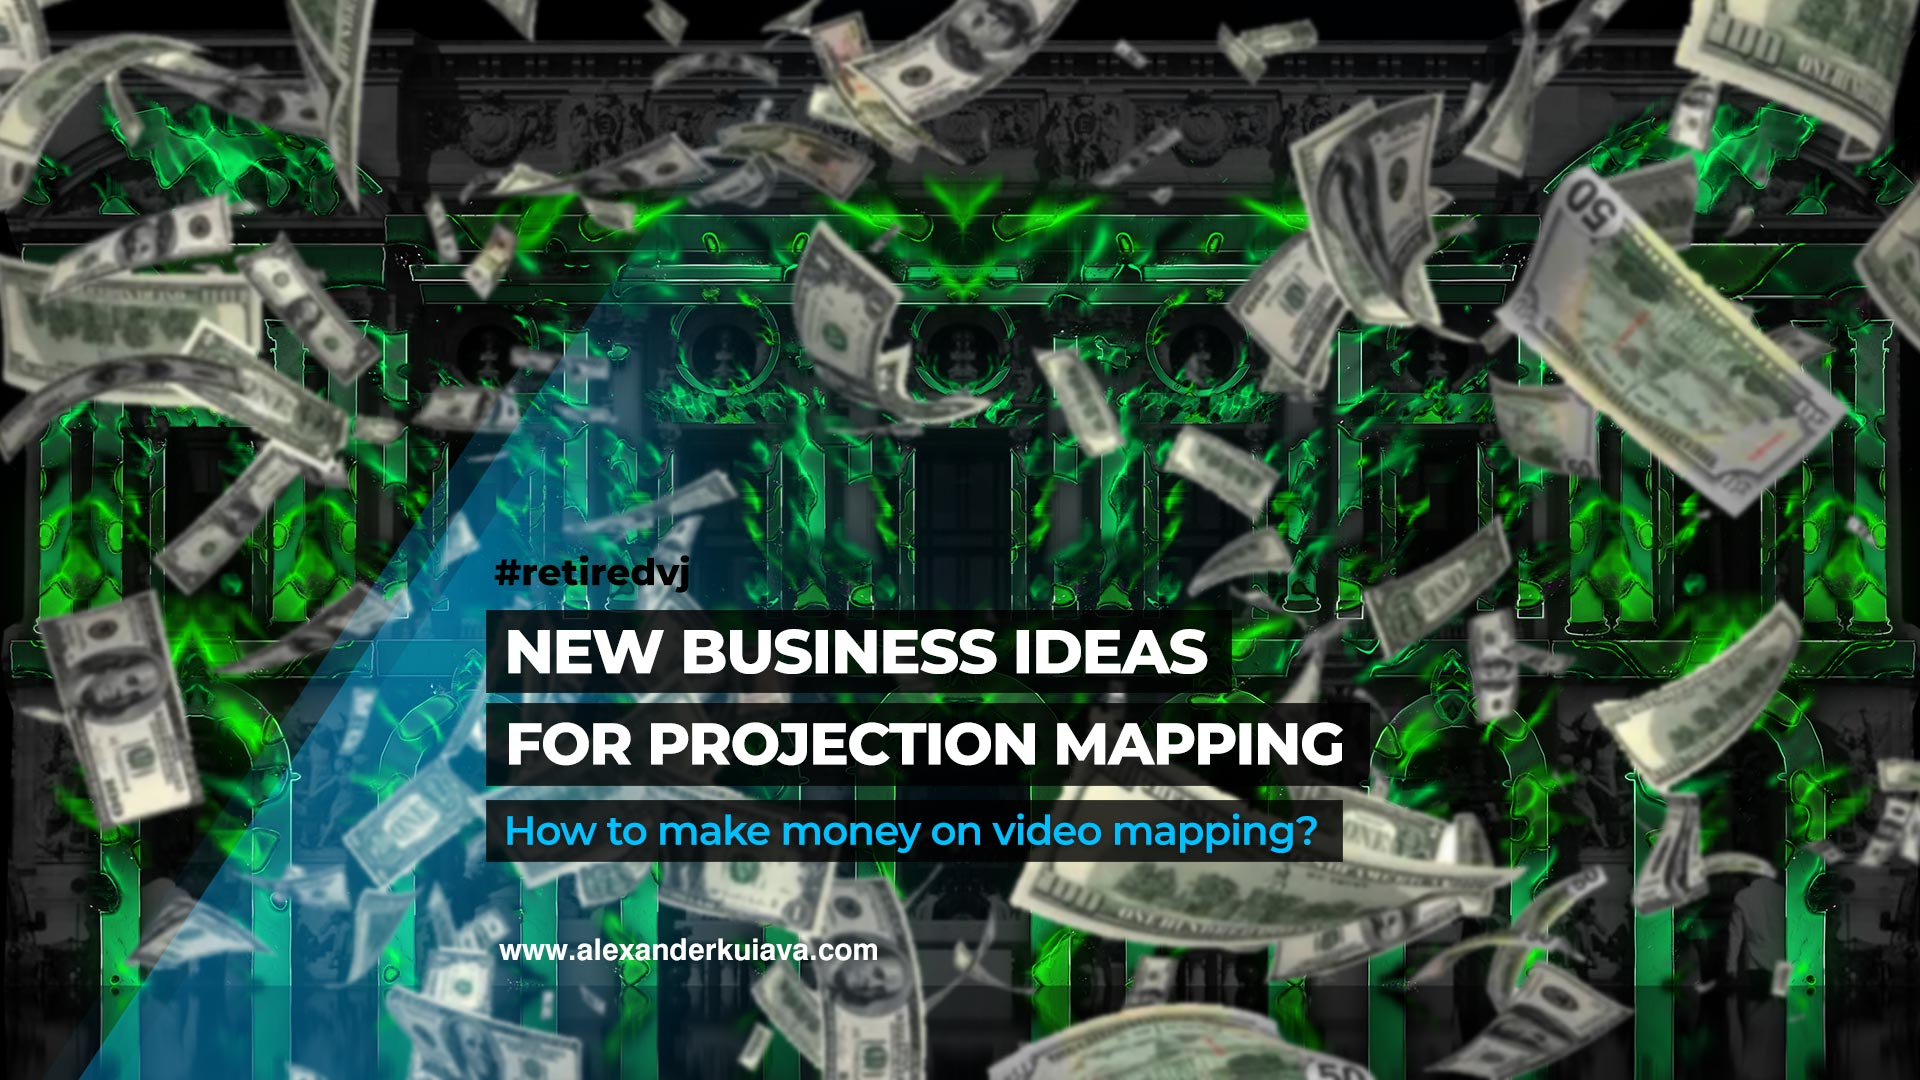 Business ideas for video mapping projection